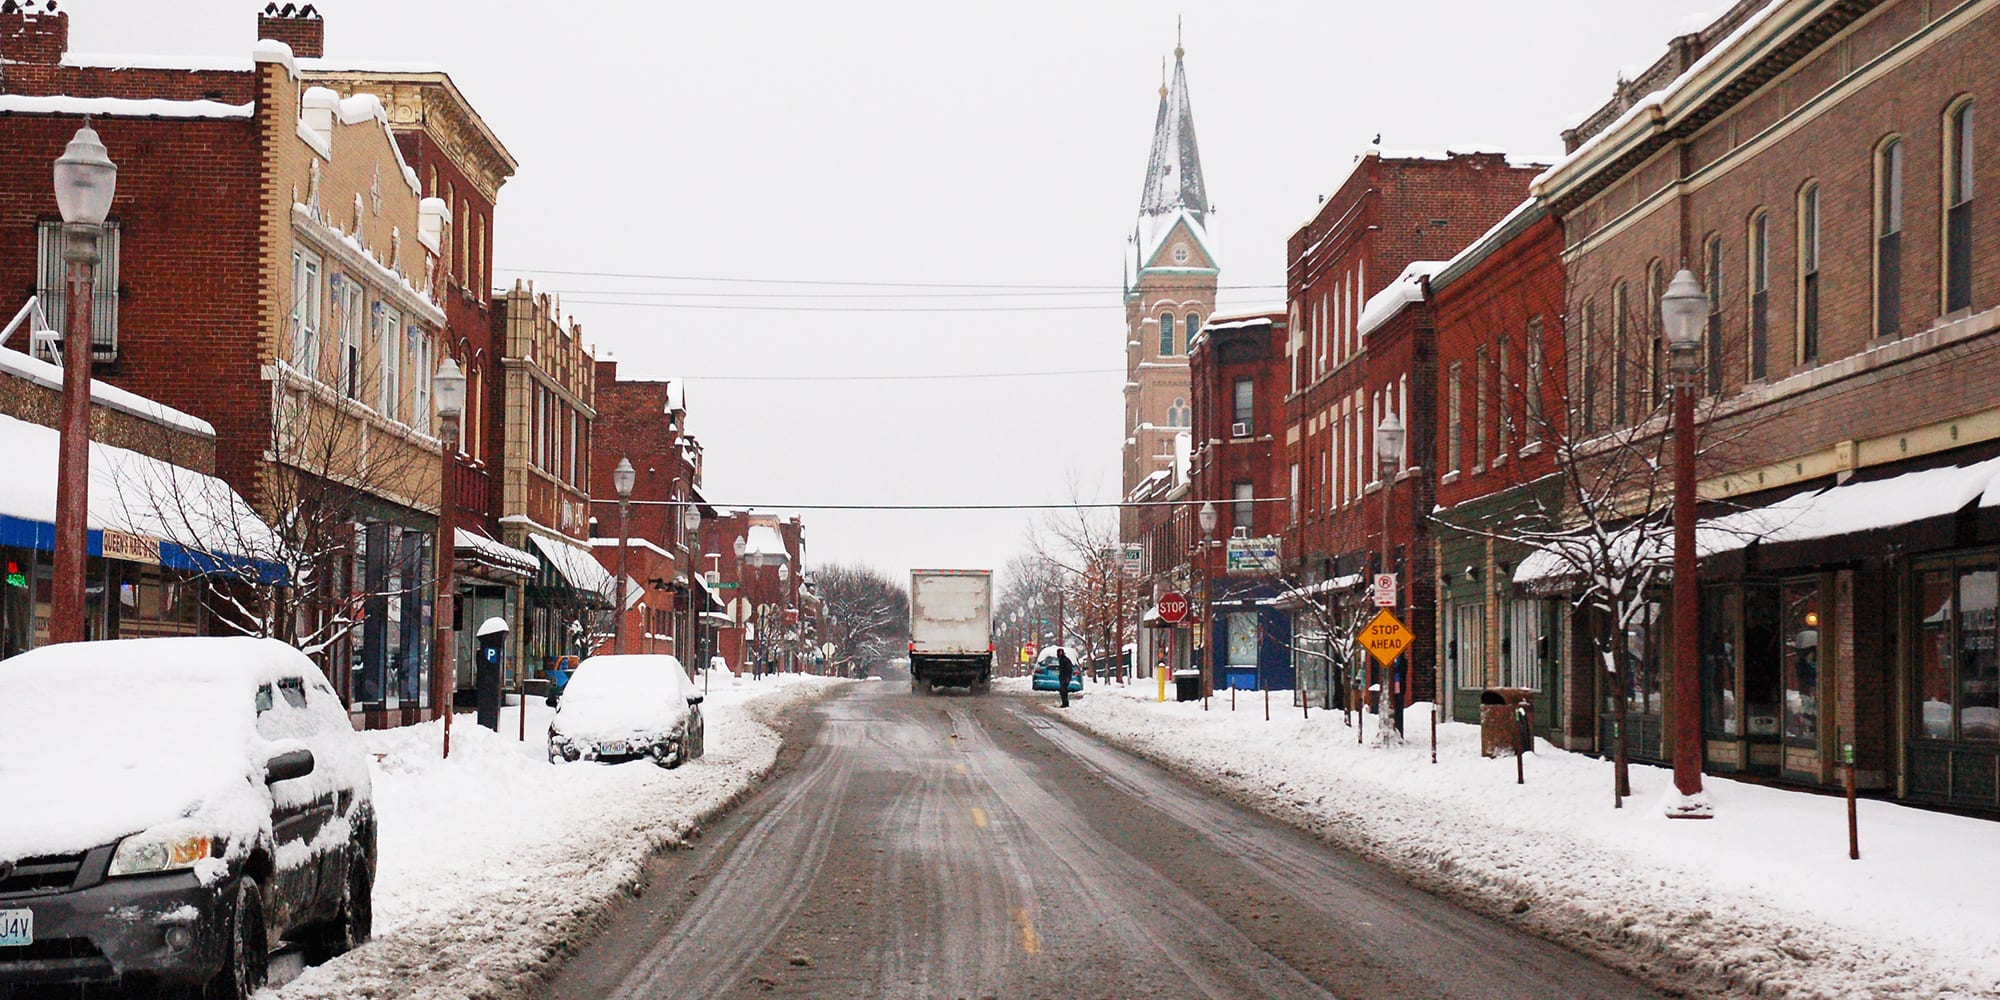 Downtown Dutchtown in the snow.